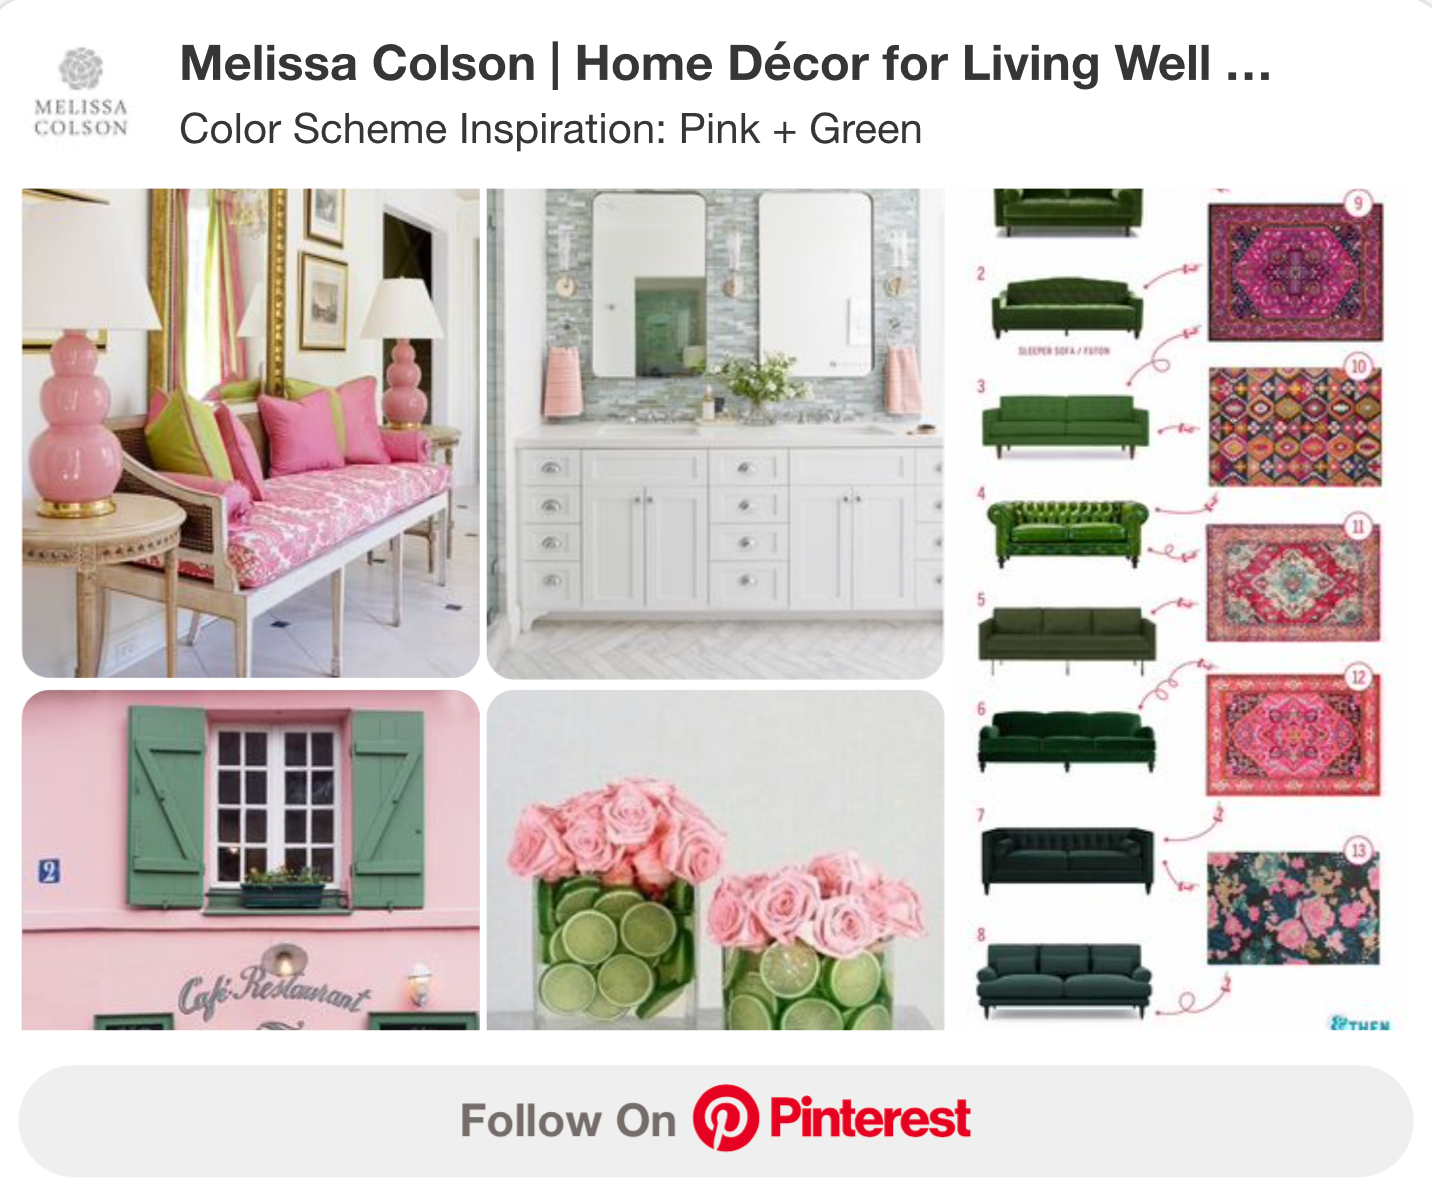 Color Scheme Inspiration Board Pink and Green